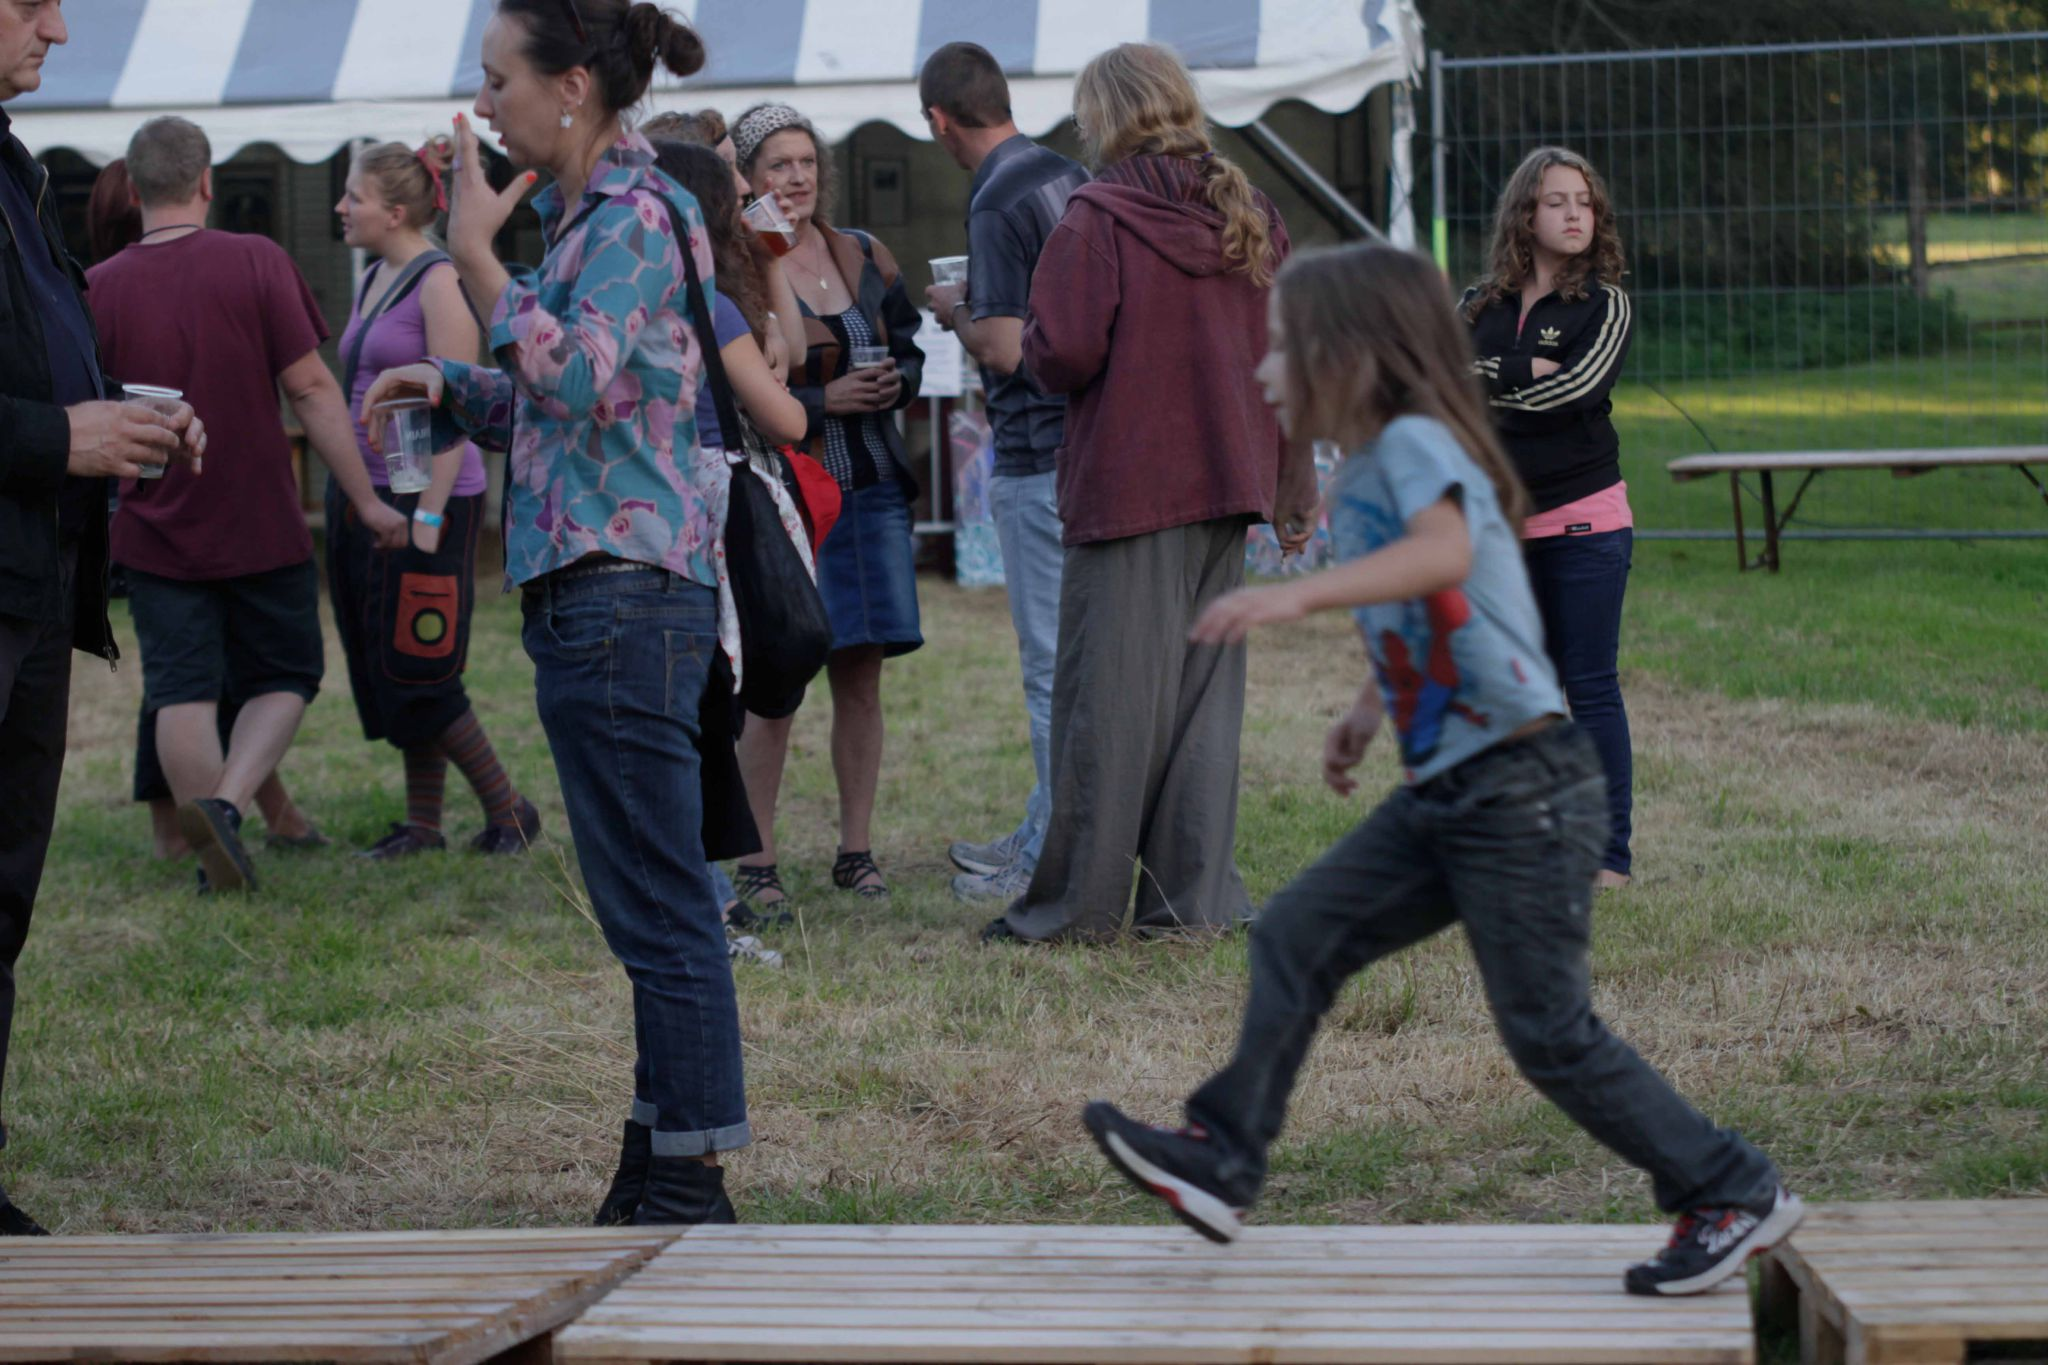 Ambiance-DTGFestival-2012-2